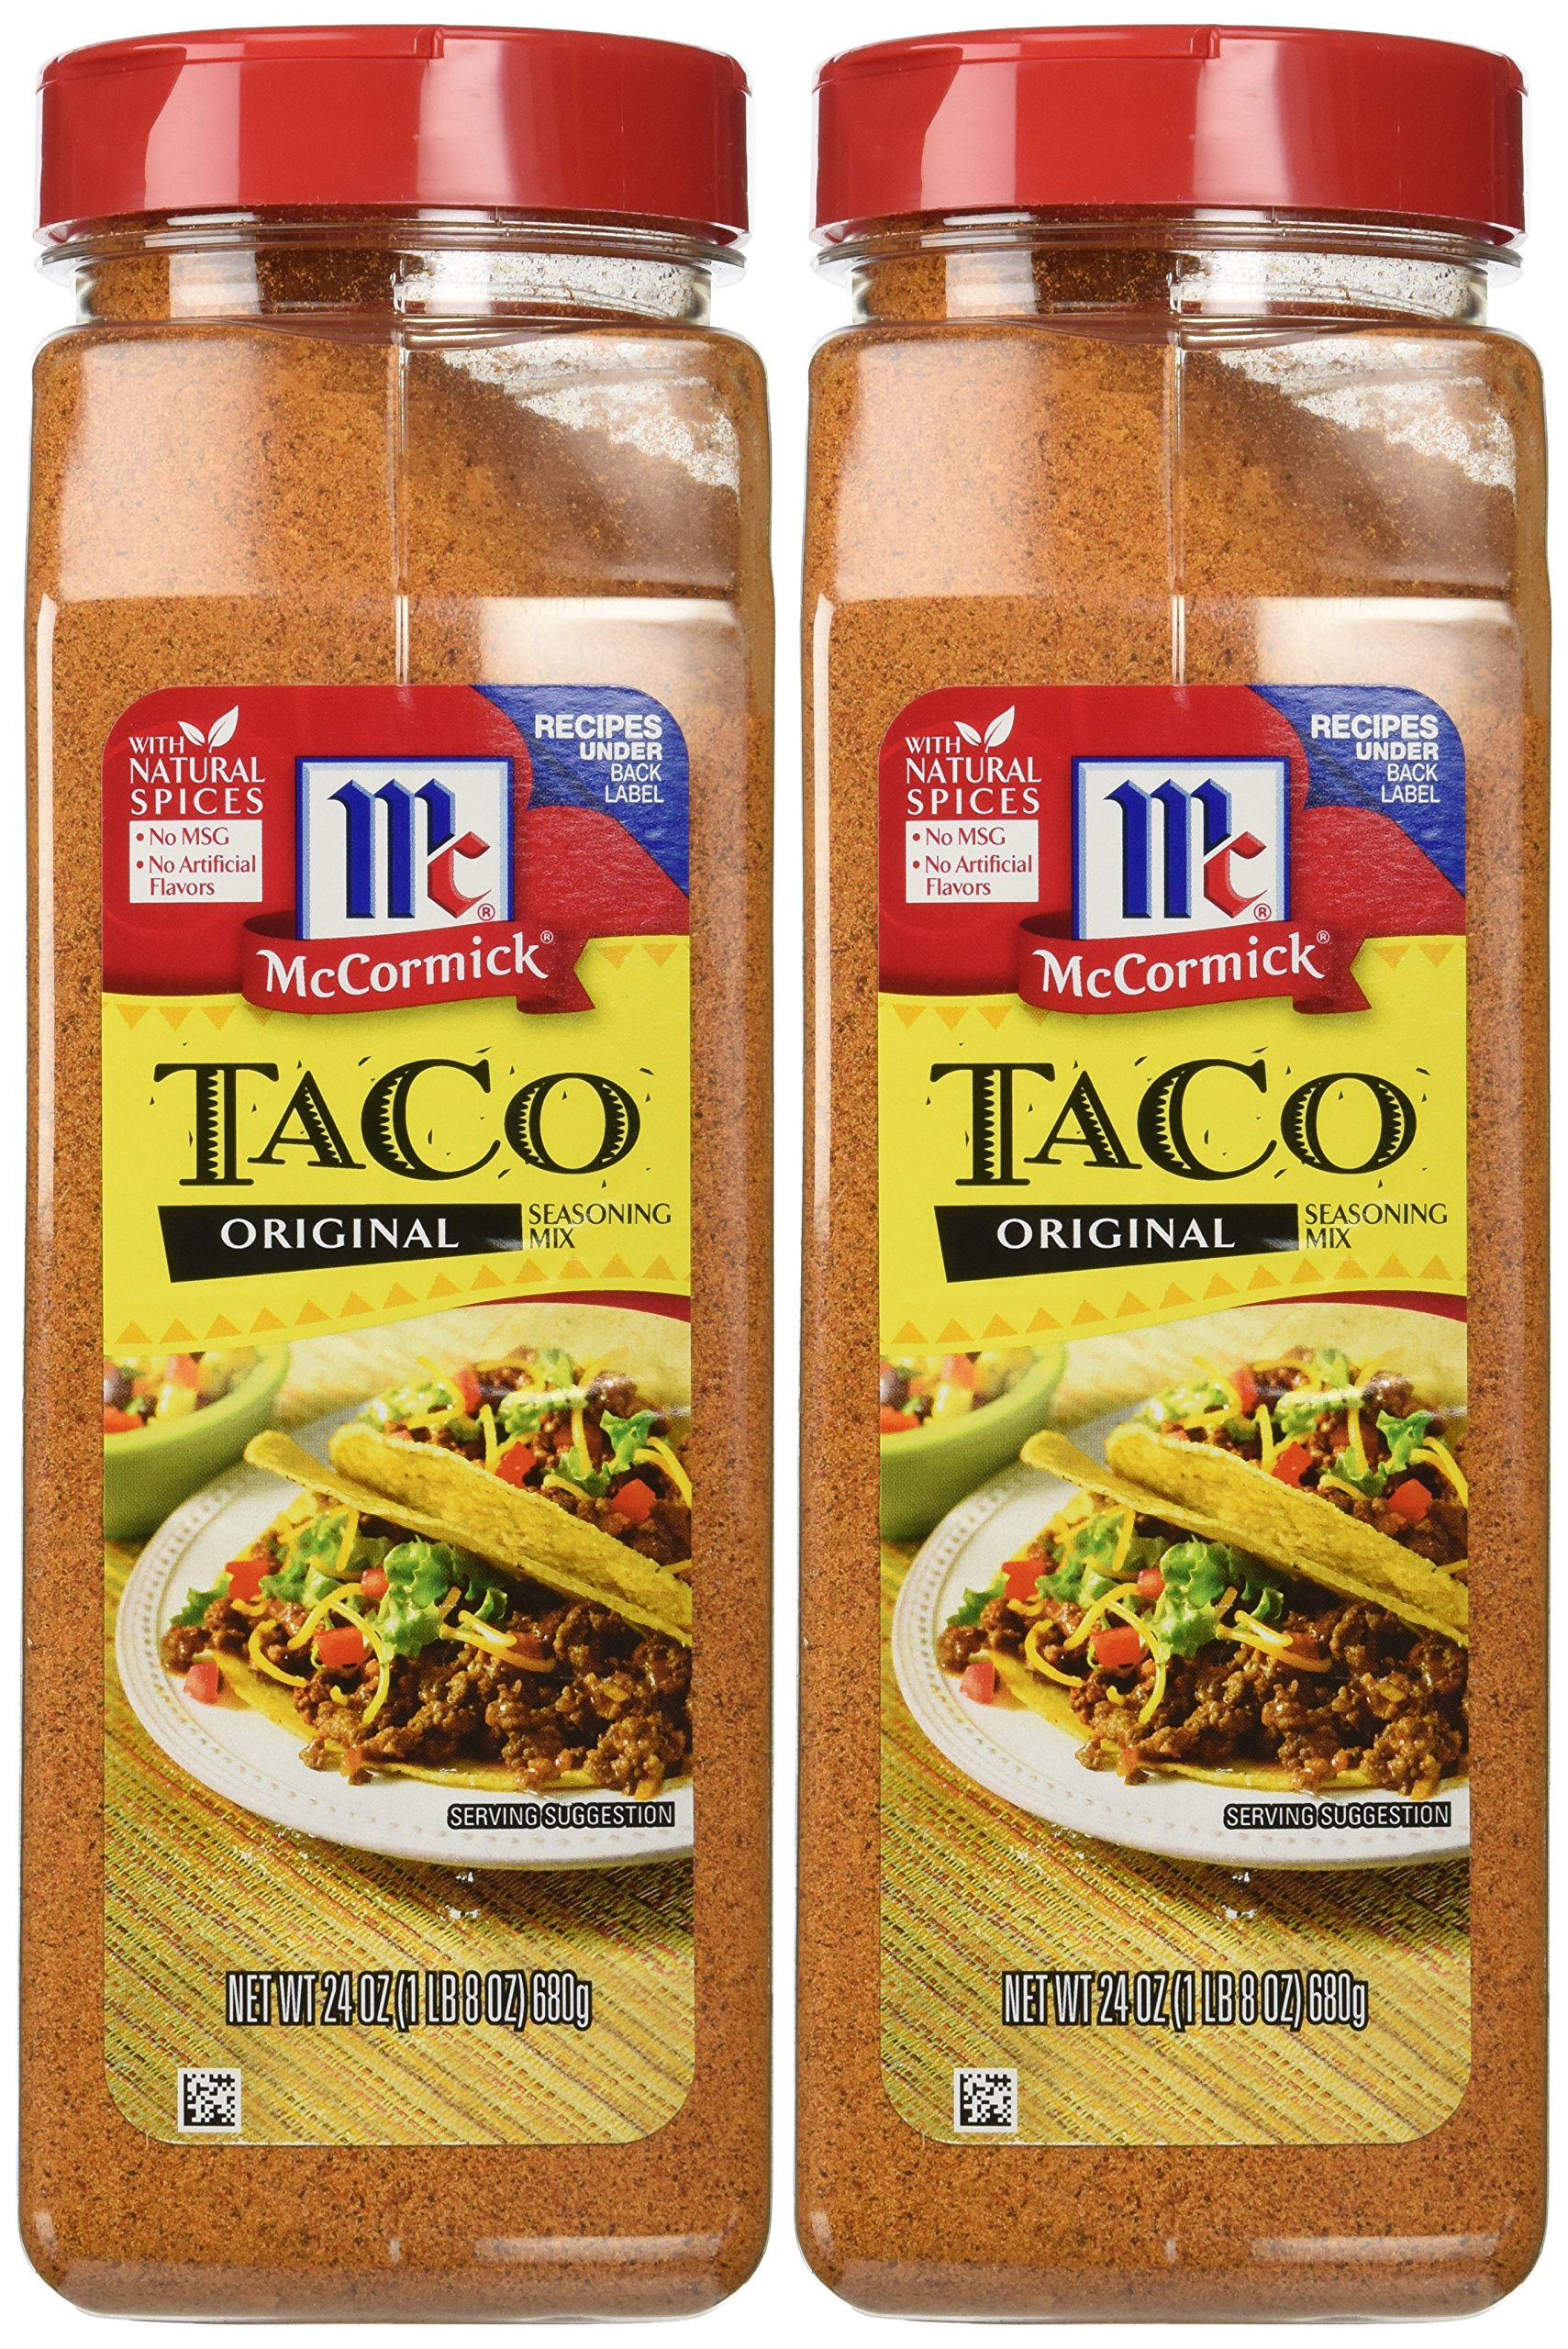 Mccormick Original Taco Seasoning Mix 680g Tub Buy Online In Belize At Belize Desertcart Com Productid 50211316